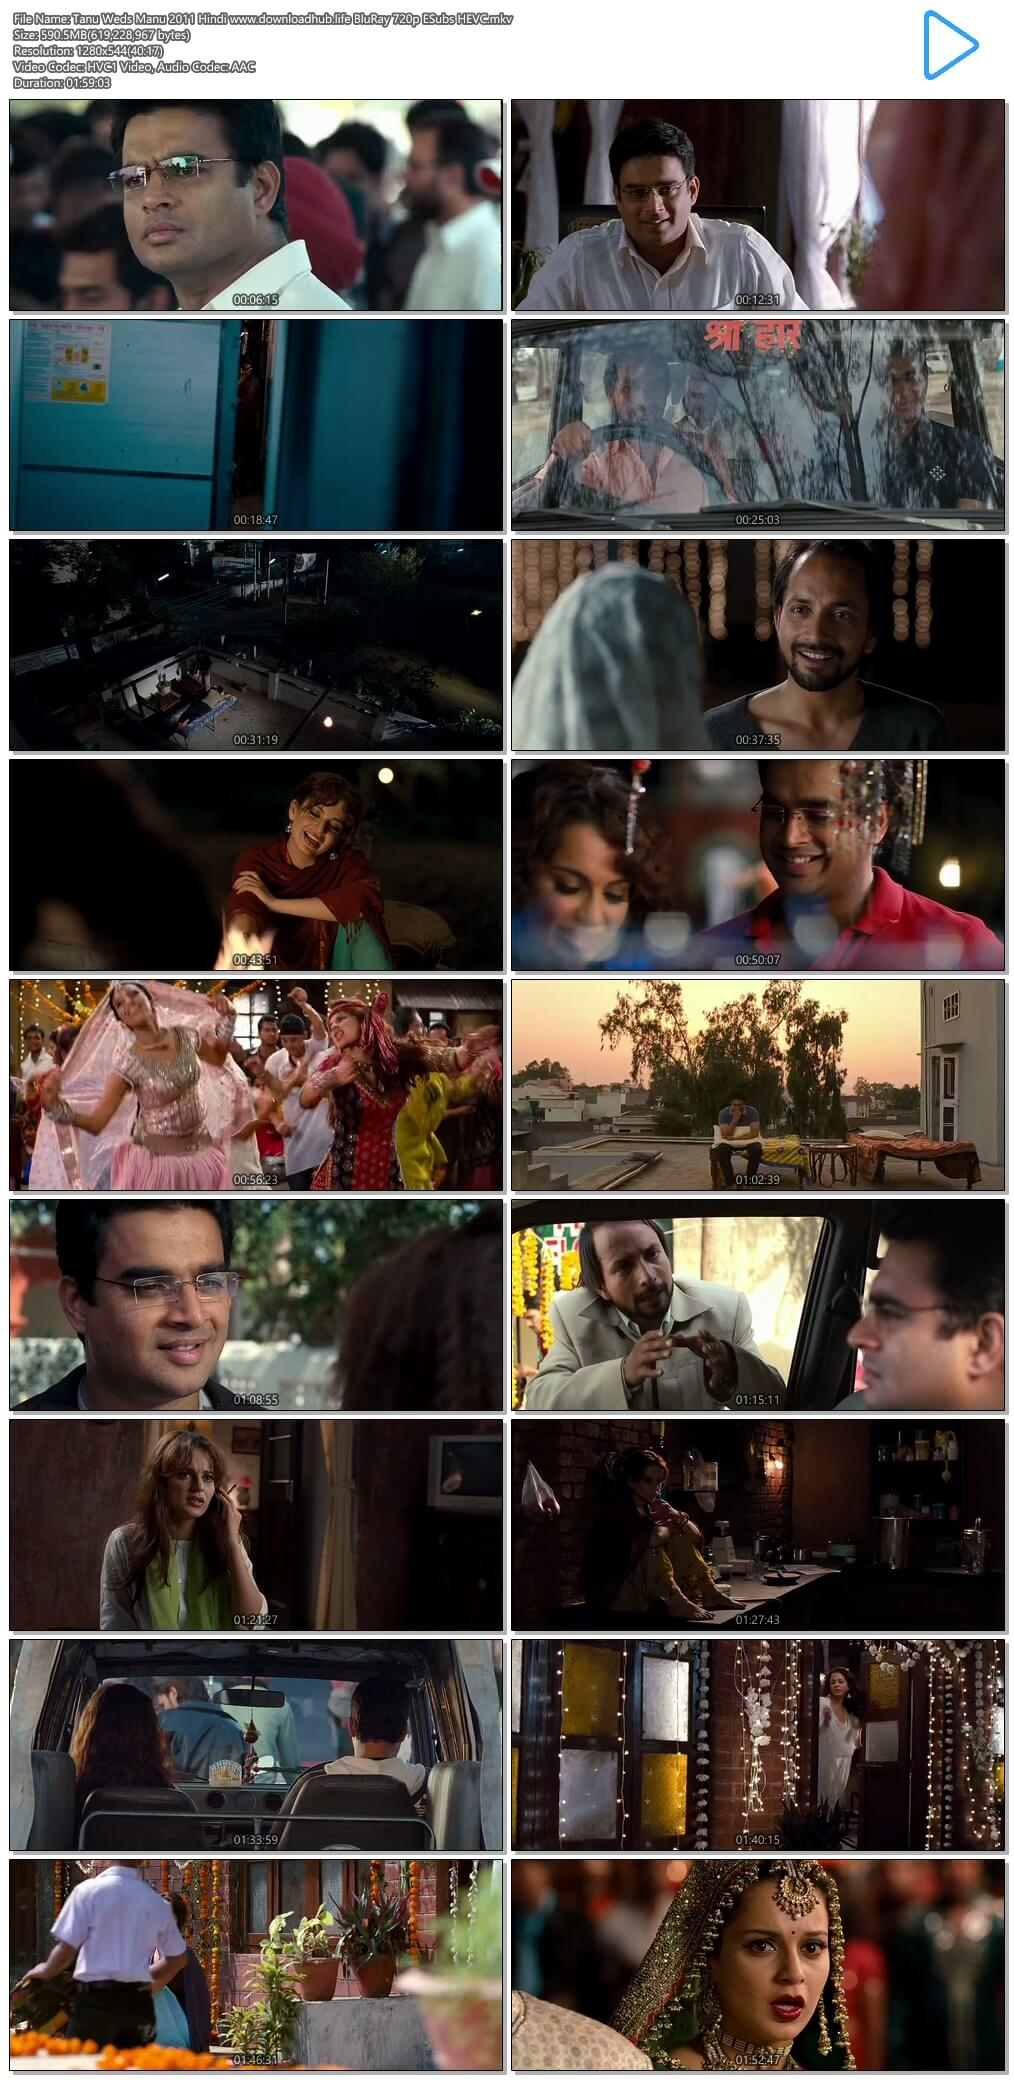 Tanu Weds Manu 2011 Hindi 600MB BluRay 720p ESubs HEVCs